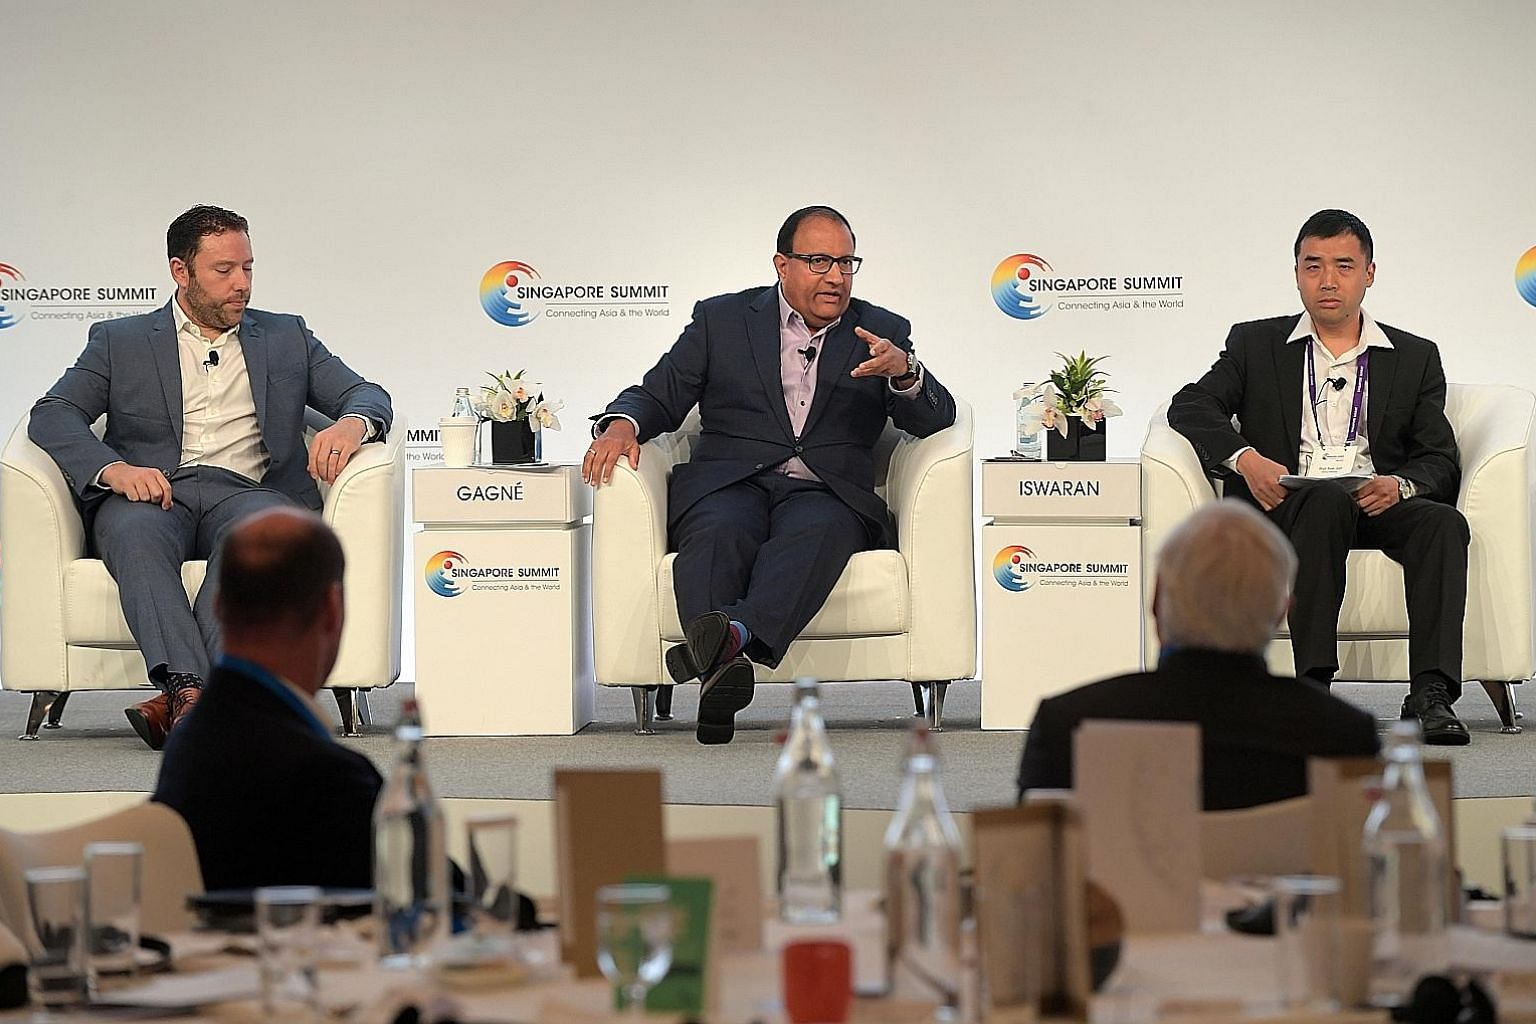 Mr S. Iswaran, Minister for Communications and Information, at the panel discussion of the annual Singapore Summit with Mr Jean-Francois Gagne (left), chief executive of software firm Element AI, and Professor Xue Jun (right) of Peking University Law